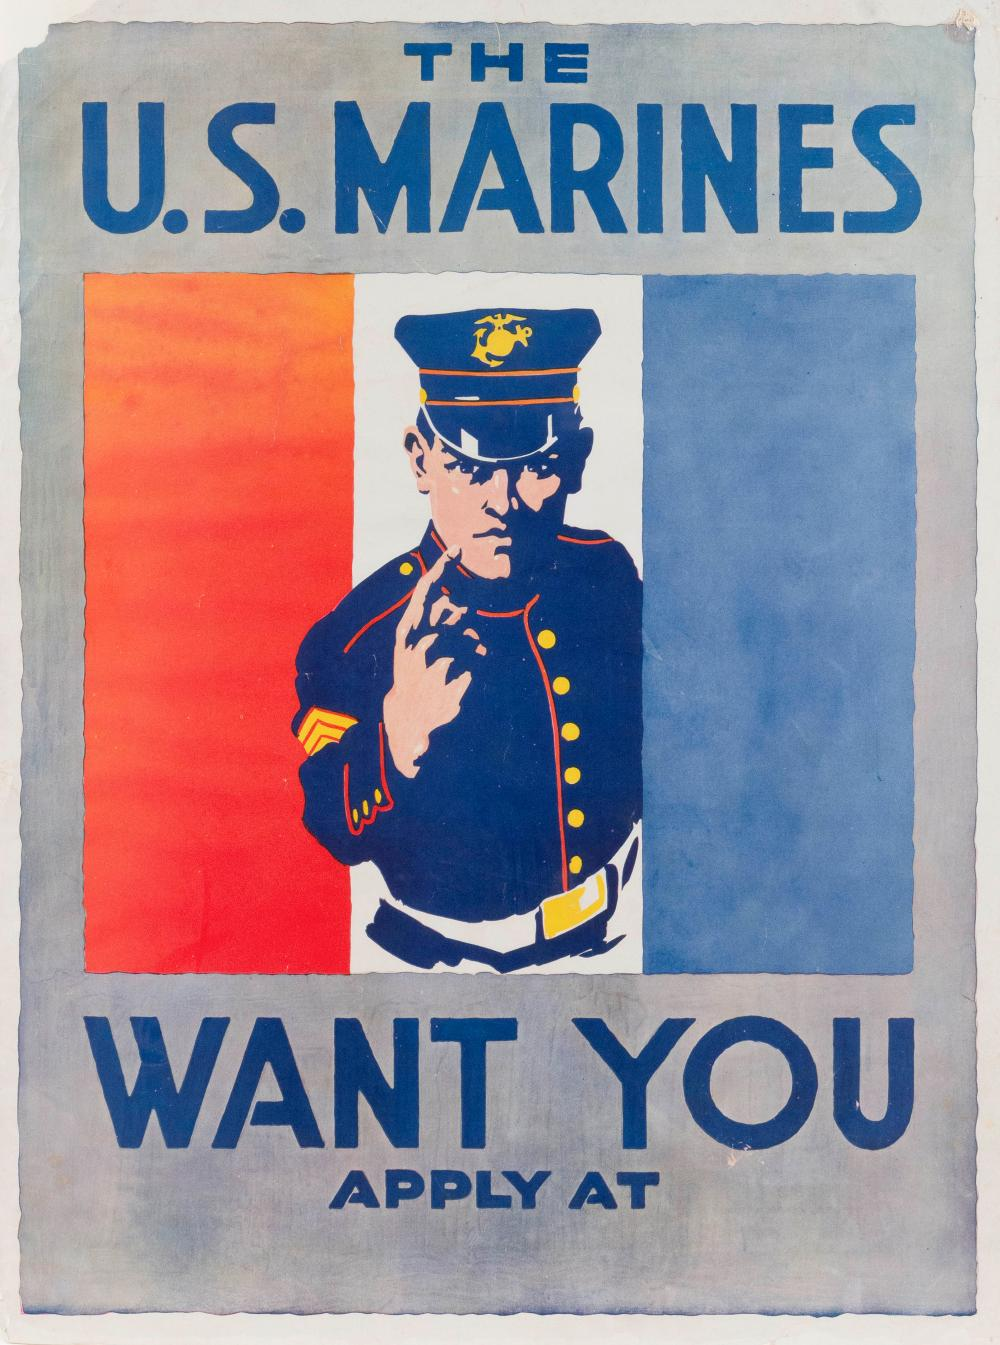 """THE U.S. MARINES WANT YOU"" WORLD WAR I POSTER By Charles B. Falls. Depicts a beckoning Marine in dress uniform against red, white a..."